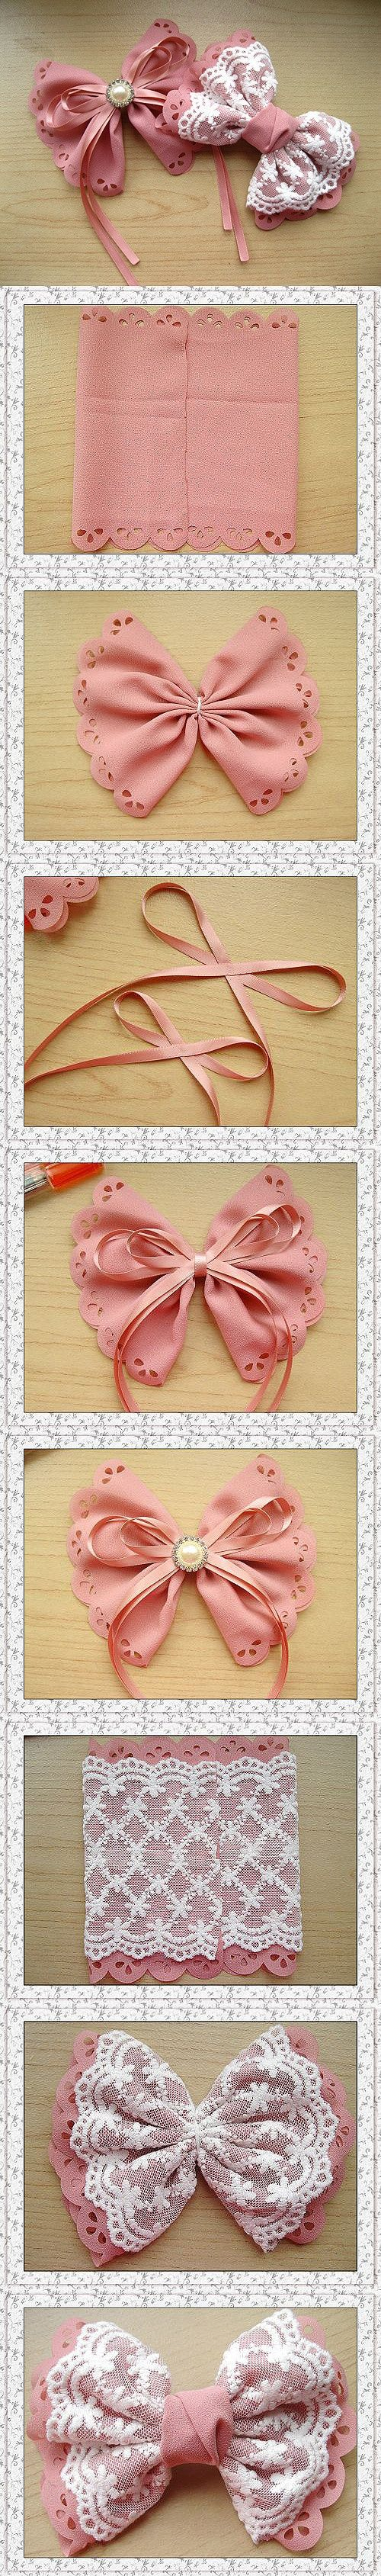 20 DIY Tutorials for Hair Accessories - Handmade Hair Accessories